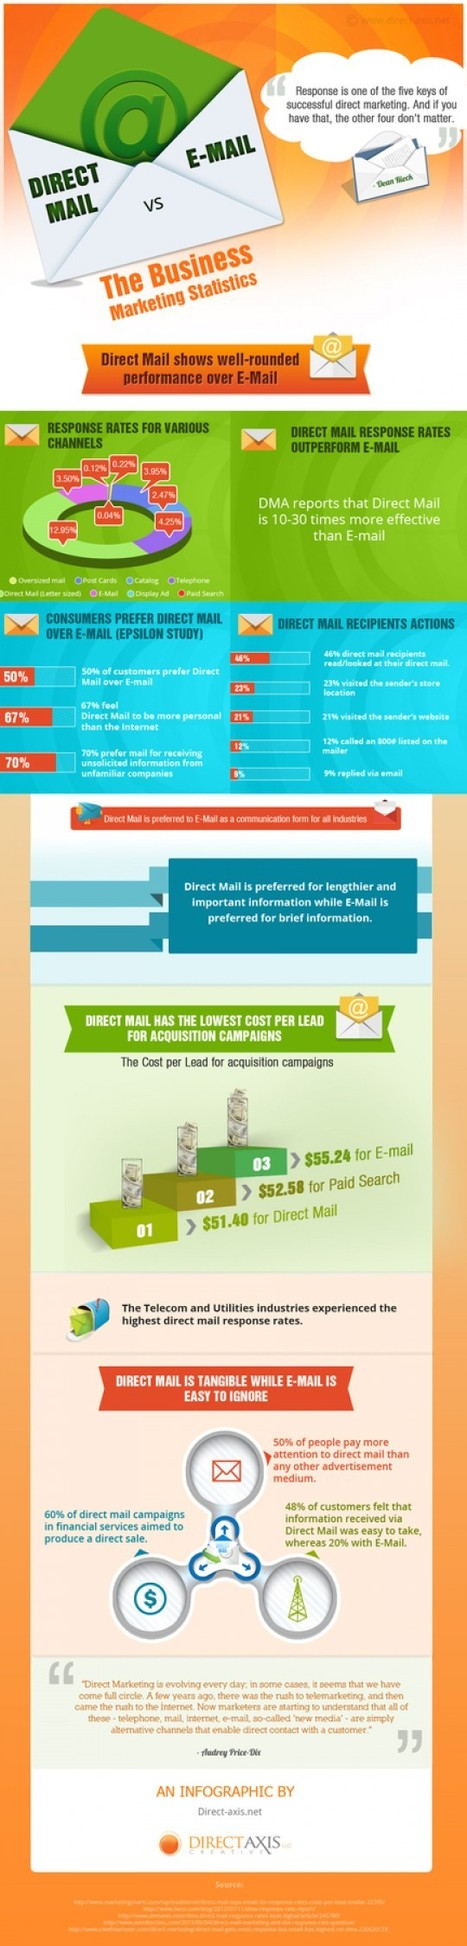 Infographic: Direct Mail v. Email Marketing Statistics | Direct Axis Creative, LLC | Scoop.it